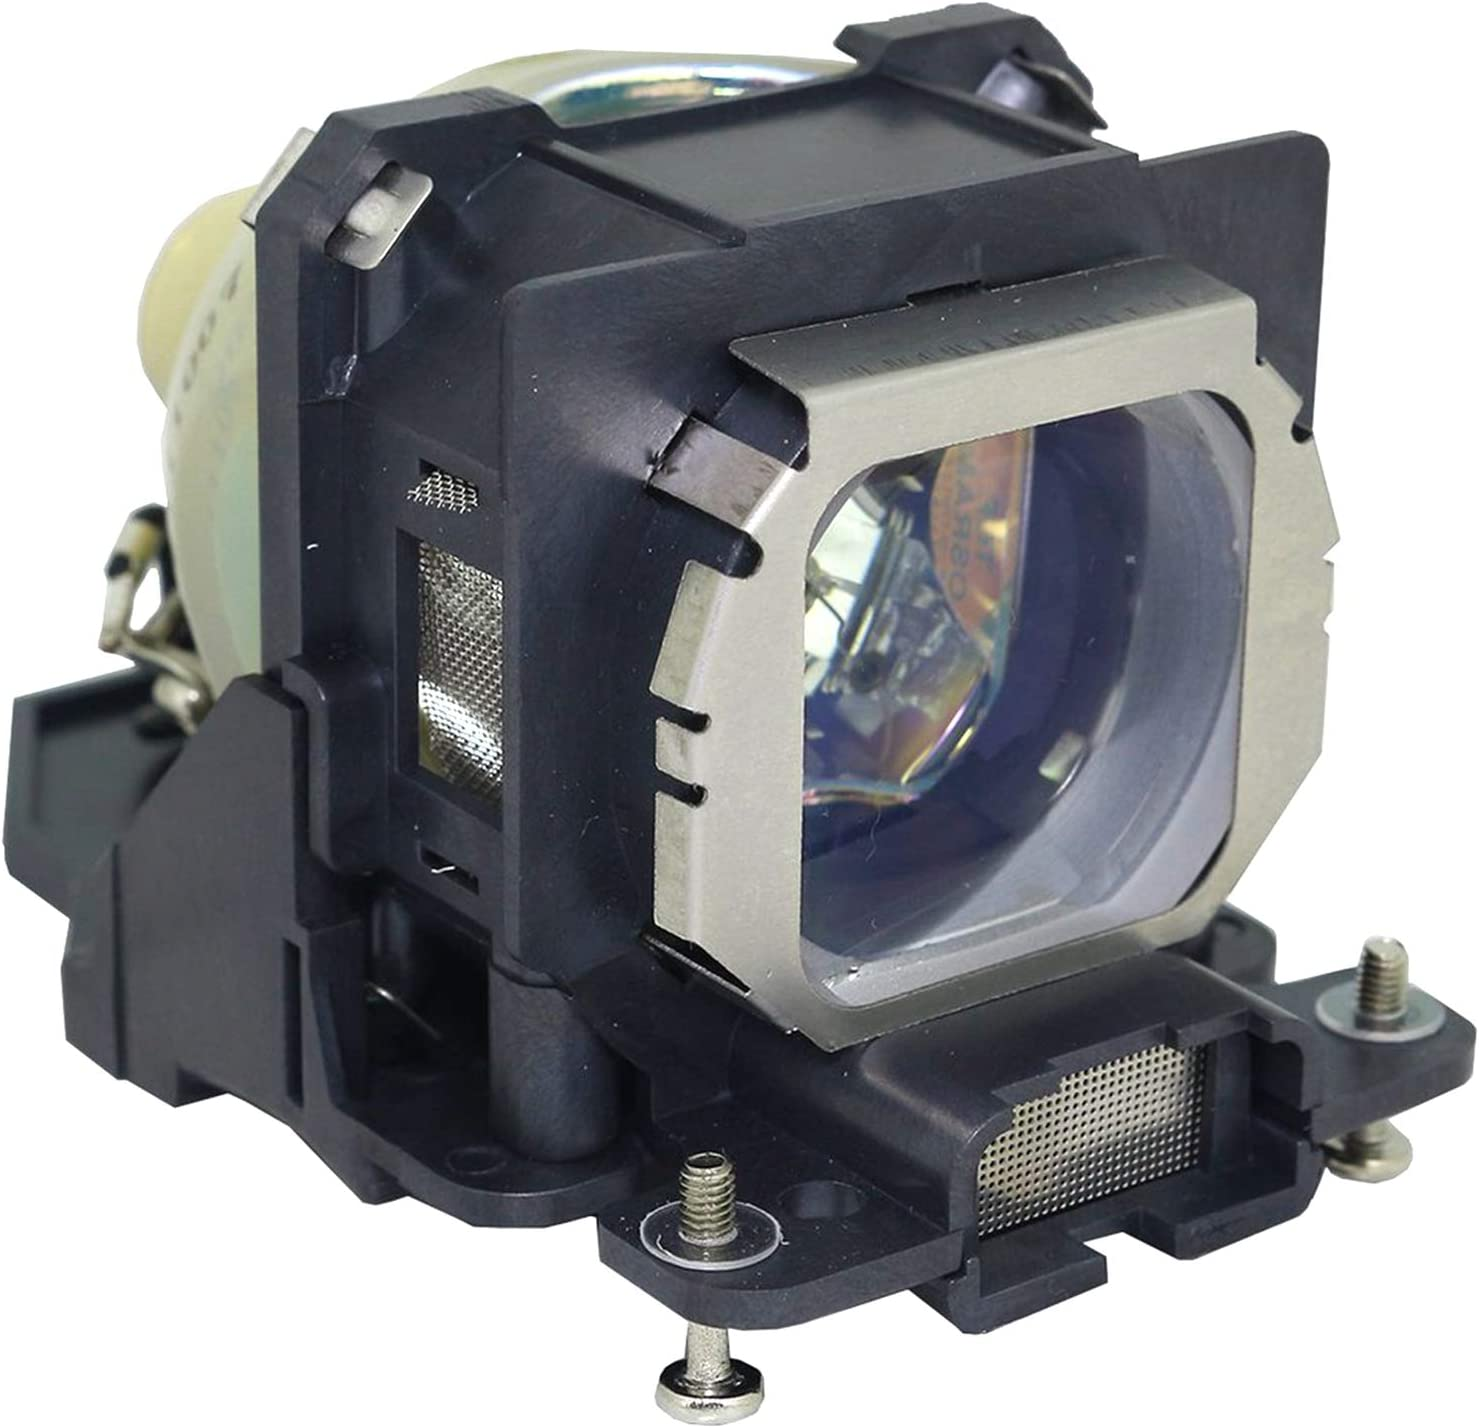 ET-LAE900/ET-LAE700 Replacement Projector Lamp with Housing for Panasonic PT-AE900 PT-AE900U PT-AE700 PT-AE700E PT-AE700U PT-AE800 PT-AE800E PT-AE800U Projector by Visdia